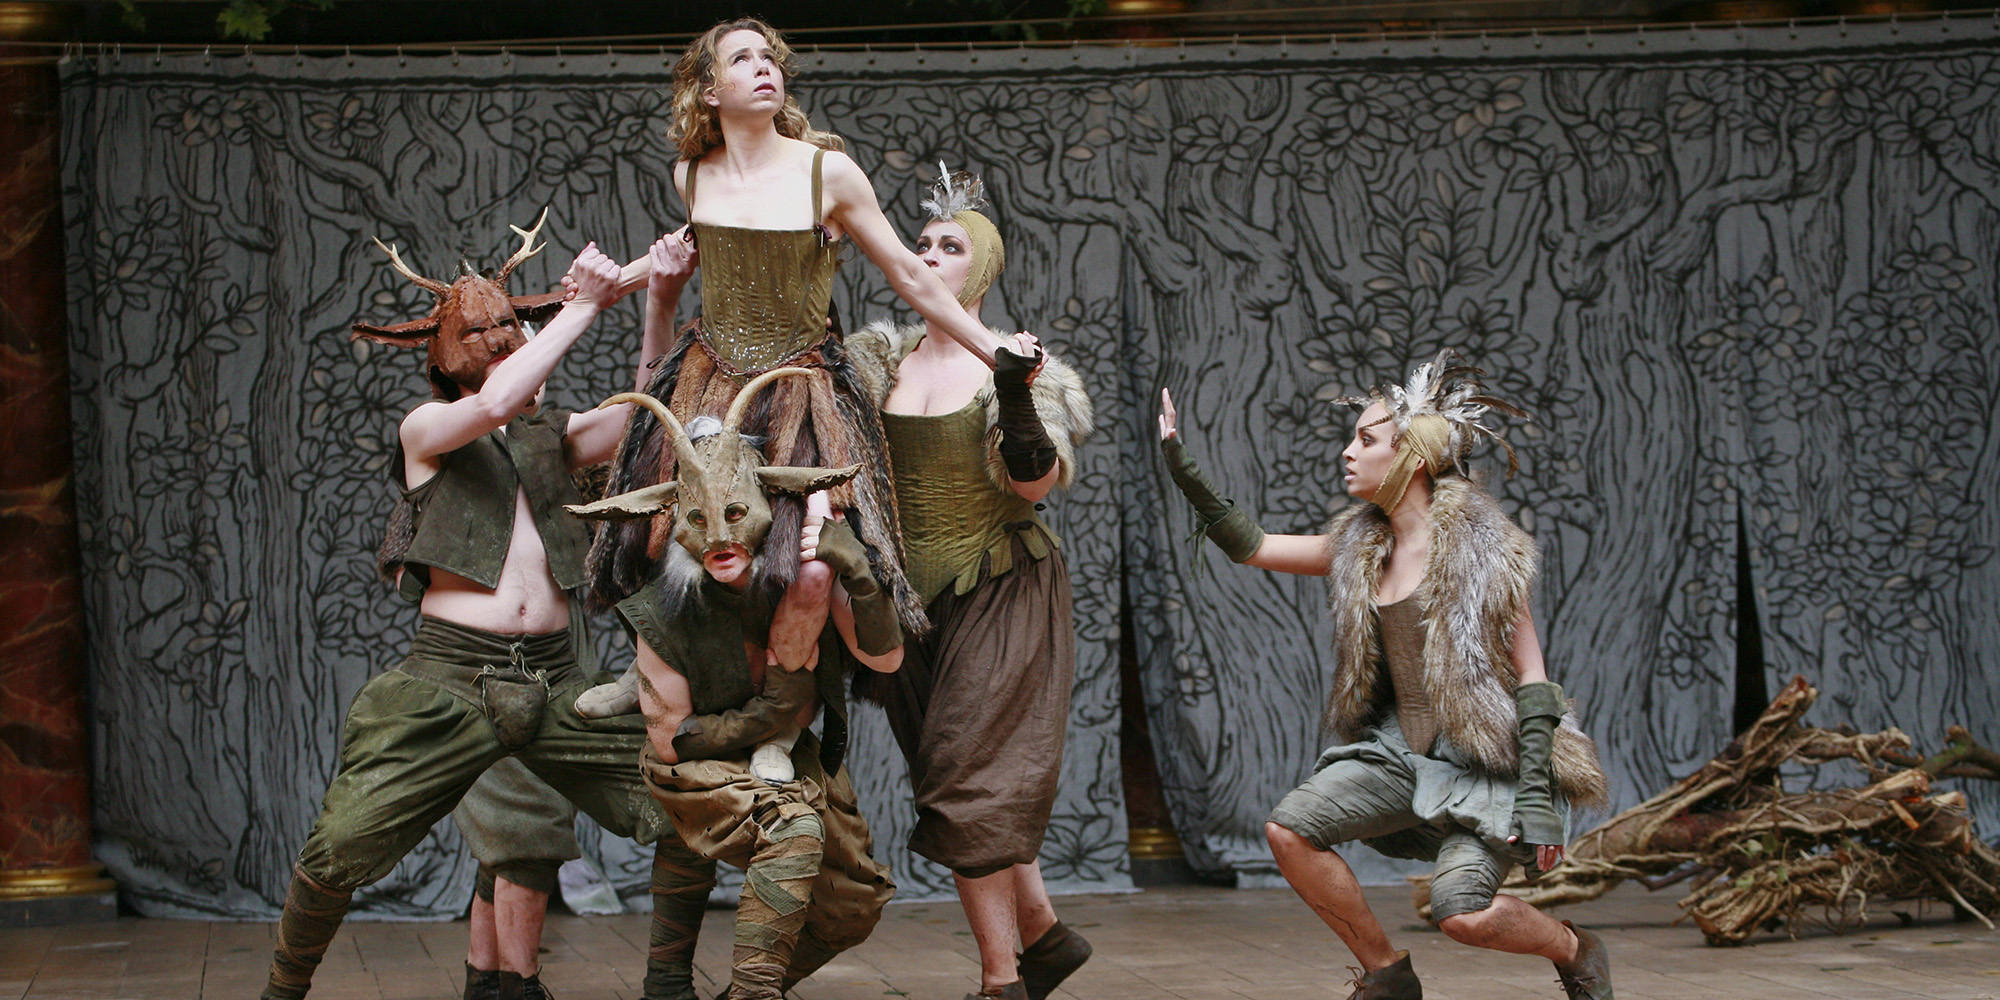 A woman wearing a green corset dress is lifted into the air by a group of people wearing fur and antlers.